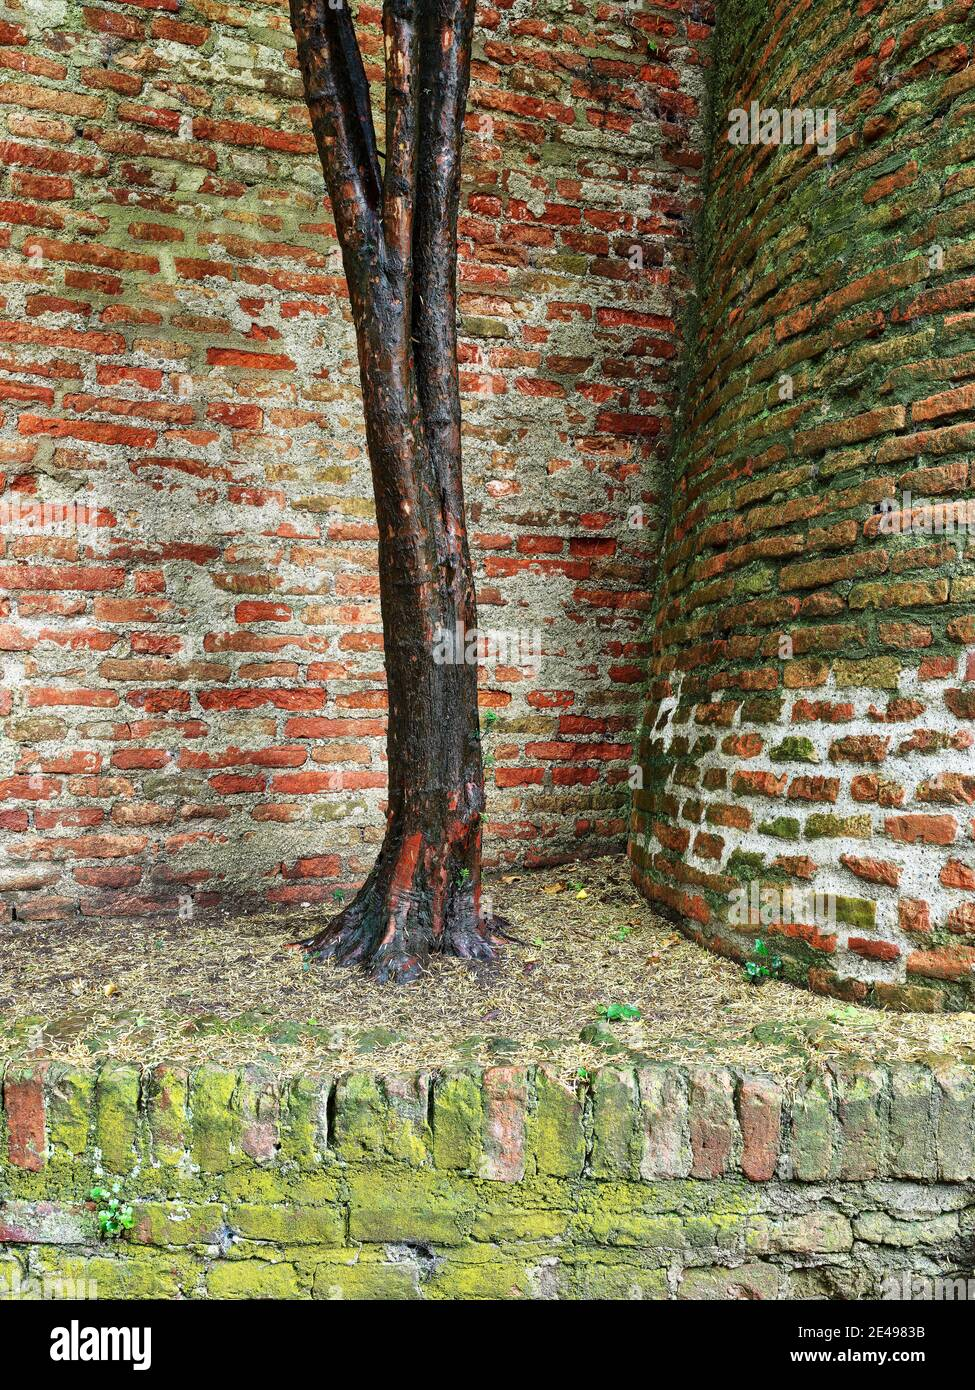 Bastion, citations, defense system, city wall, clinker wall, brick wall, city moat, fortification, historic old town, historical, old town, monument, monument site, listed, place of interest Stock Photo